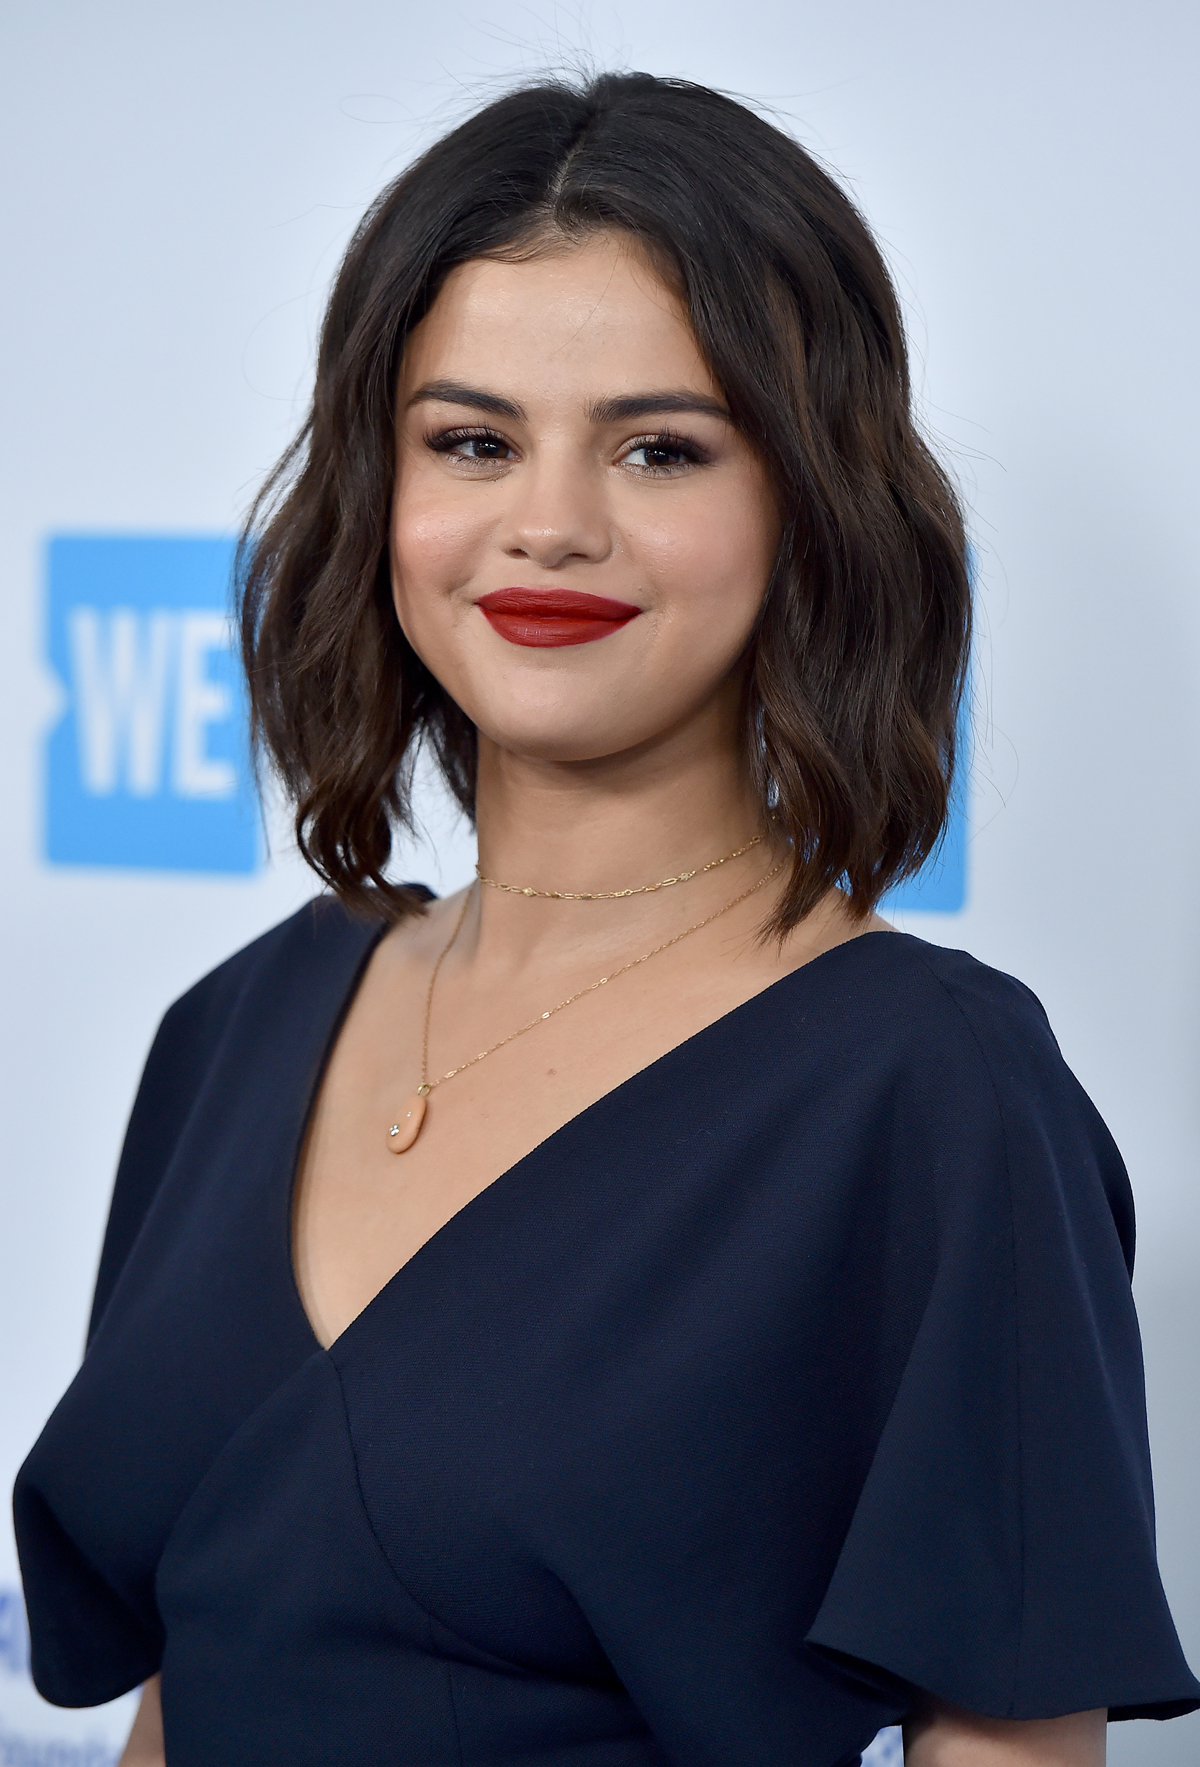 Selena Gomez Shaved Her Head and You Probably Didn't Even Notice